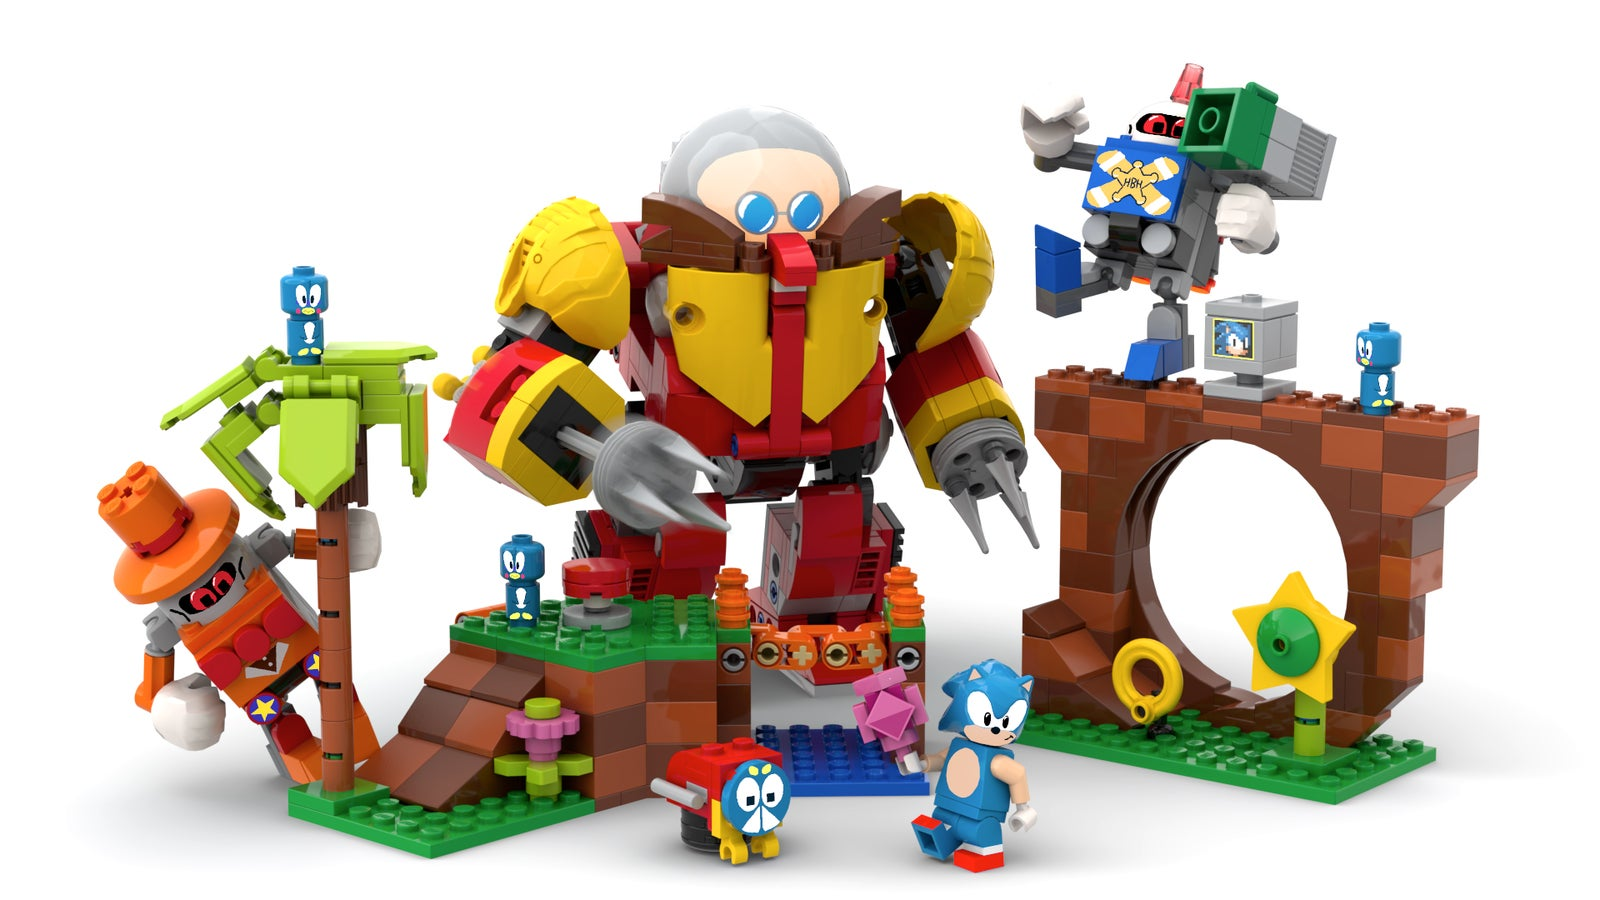 Lego Is Looking Into Making This Excellent Sonic Mania Set